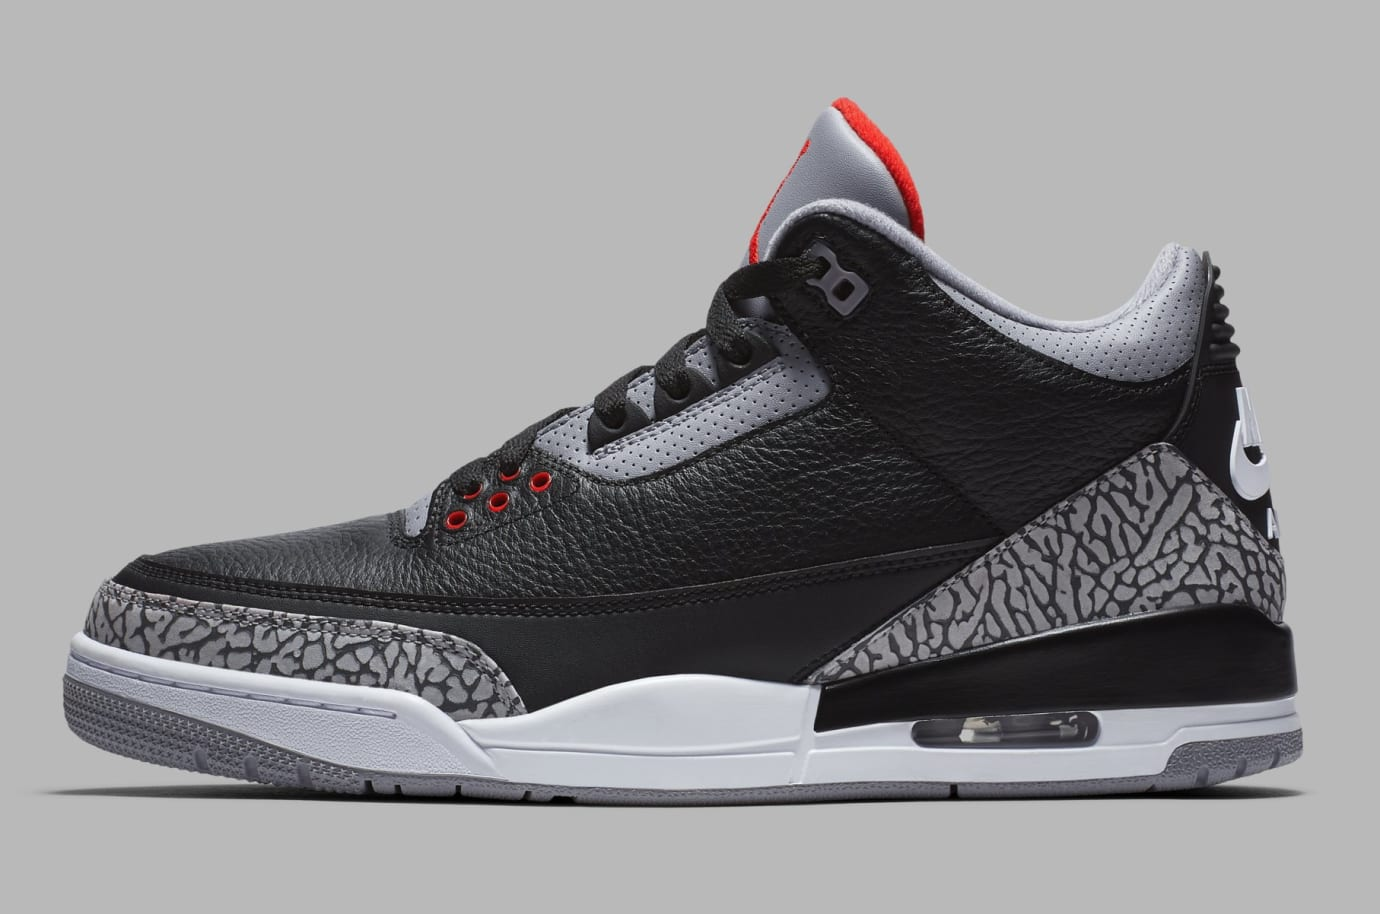 Air Jordan 3 Black/Cement Grey-White-Fire Red 854262-001 (Lateral)